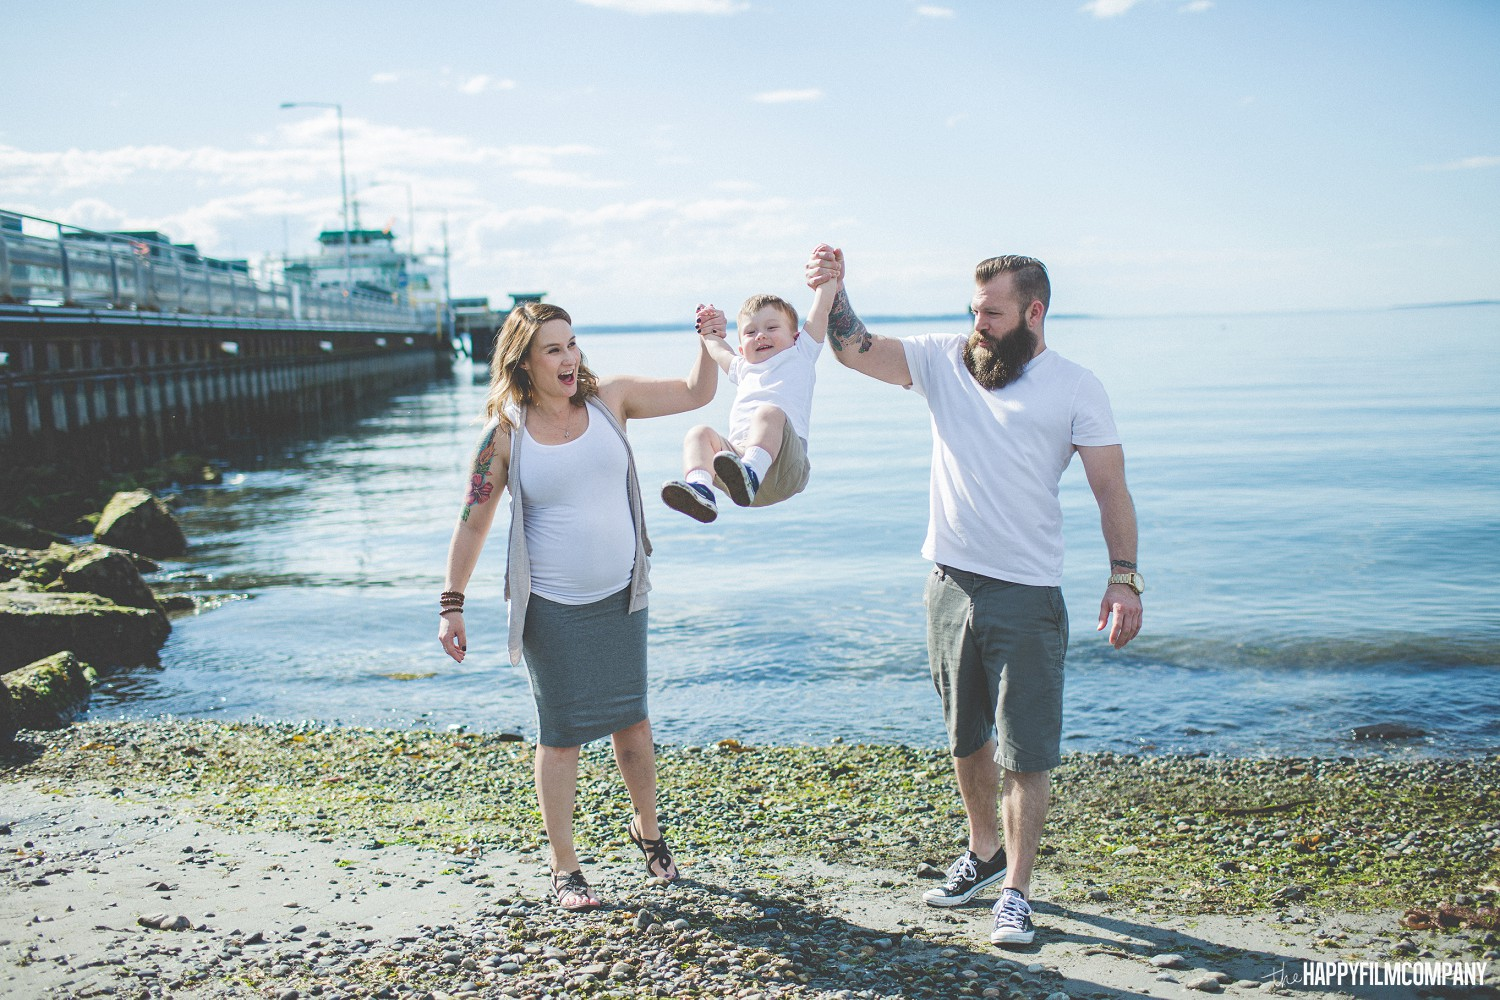 Seattle Family - Maternity Photography Session by the Beach - the Happy Film Company - Seattle Family Photos